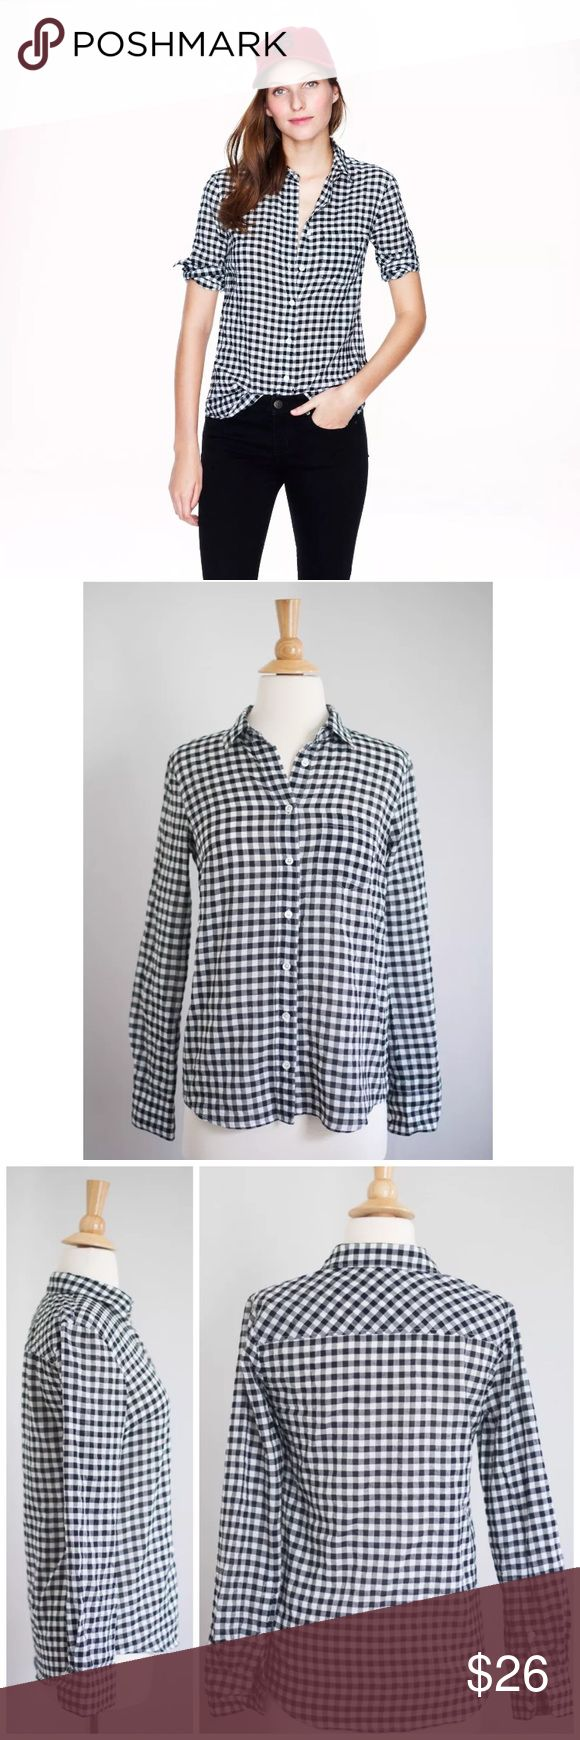 J.Crew Crinkle Boy Shirt in Black Check Excellent, pre-owned condition. No flaws! Size: 0. Color: White / Black Check. Retail price: $89.50. Can provide measurements if requested. Thanks for your interest!  Details: Soft, slightly rumpled and tailored just for you (so it's even better than his). •72% cotton, 27% modal, 1% spandex •Button placket •Long roll-up sleeves •Functional buttons at cuffs •Shaping seams at the bust •Chest pocket •Machine wash J. Crew Tops Button…